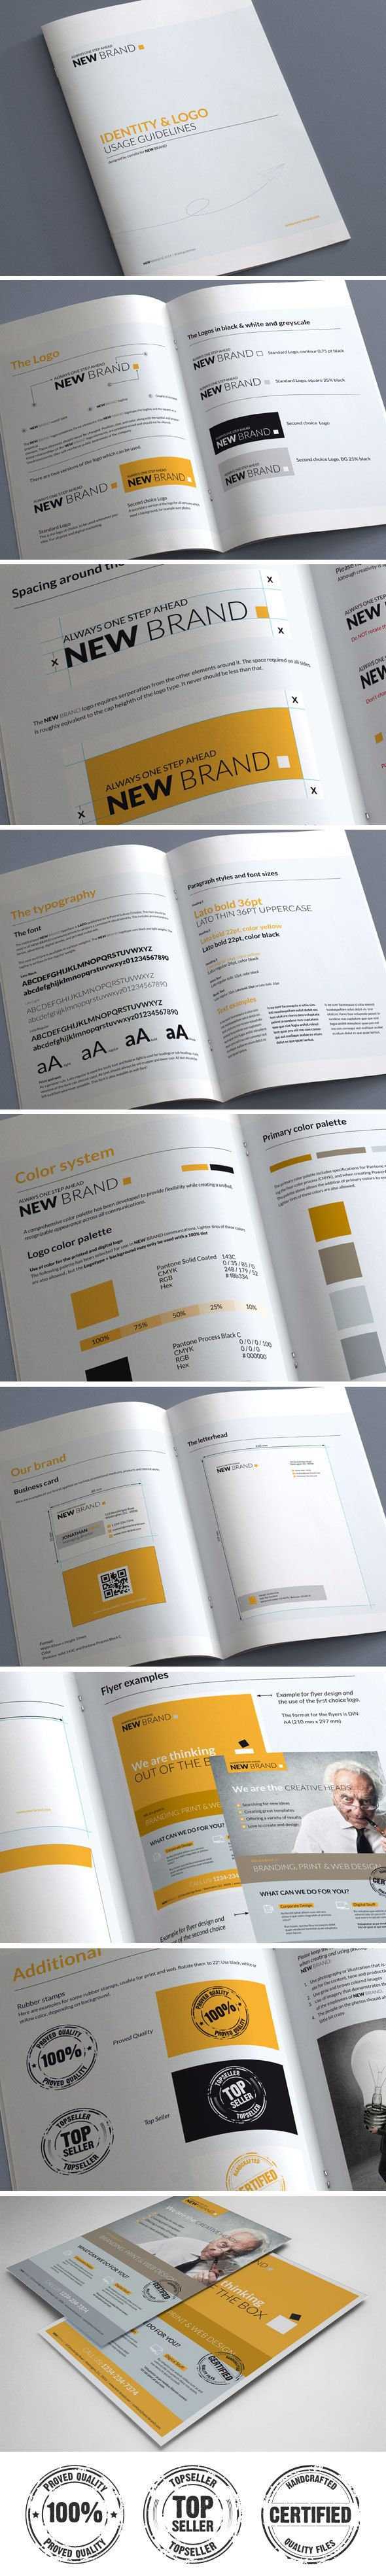 Brand Guidelines – 20 Pages Published by Maan Ali